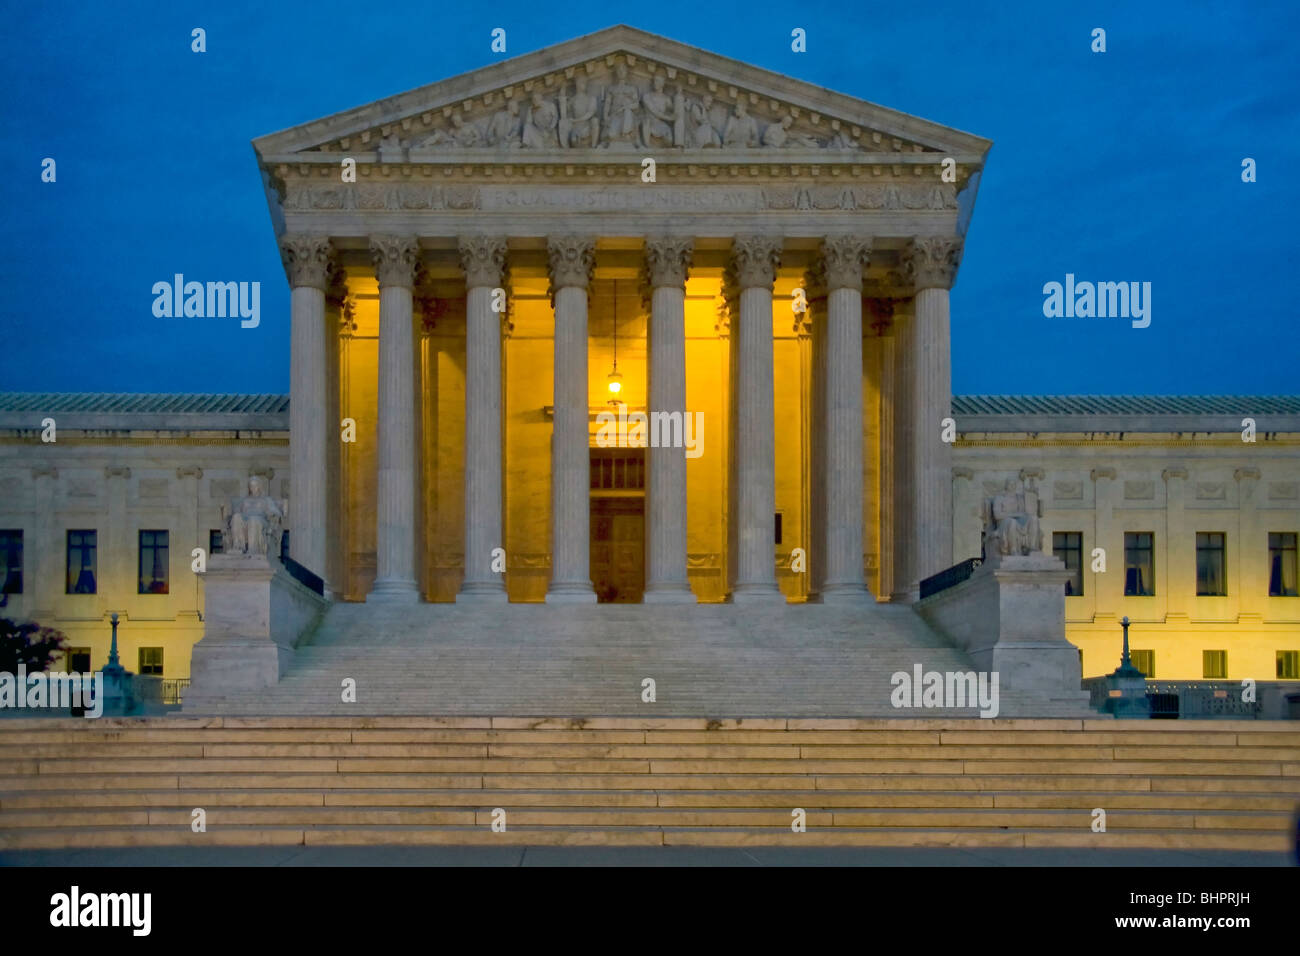 Night view of the U.S. Supreme Court building. It is the seat of the Supreme Court of the United States - Stock Image